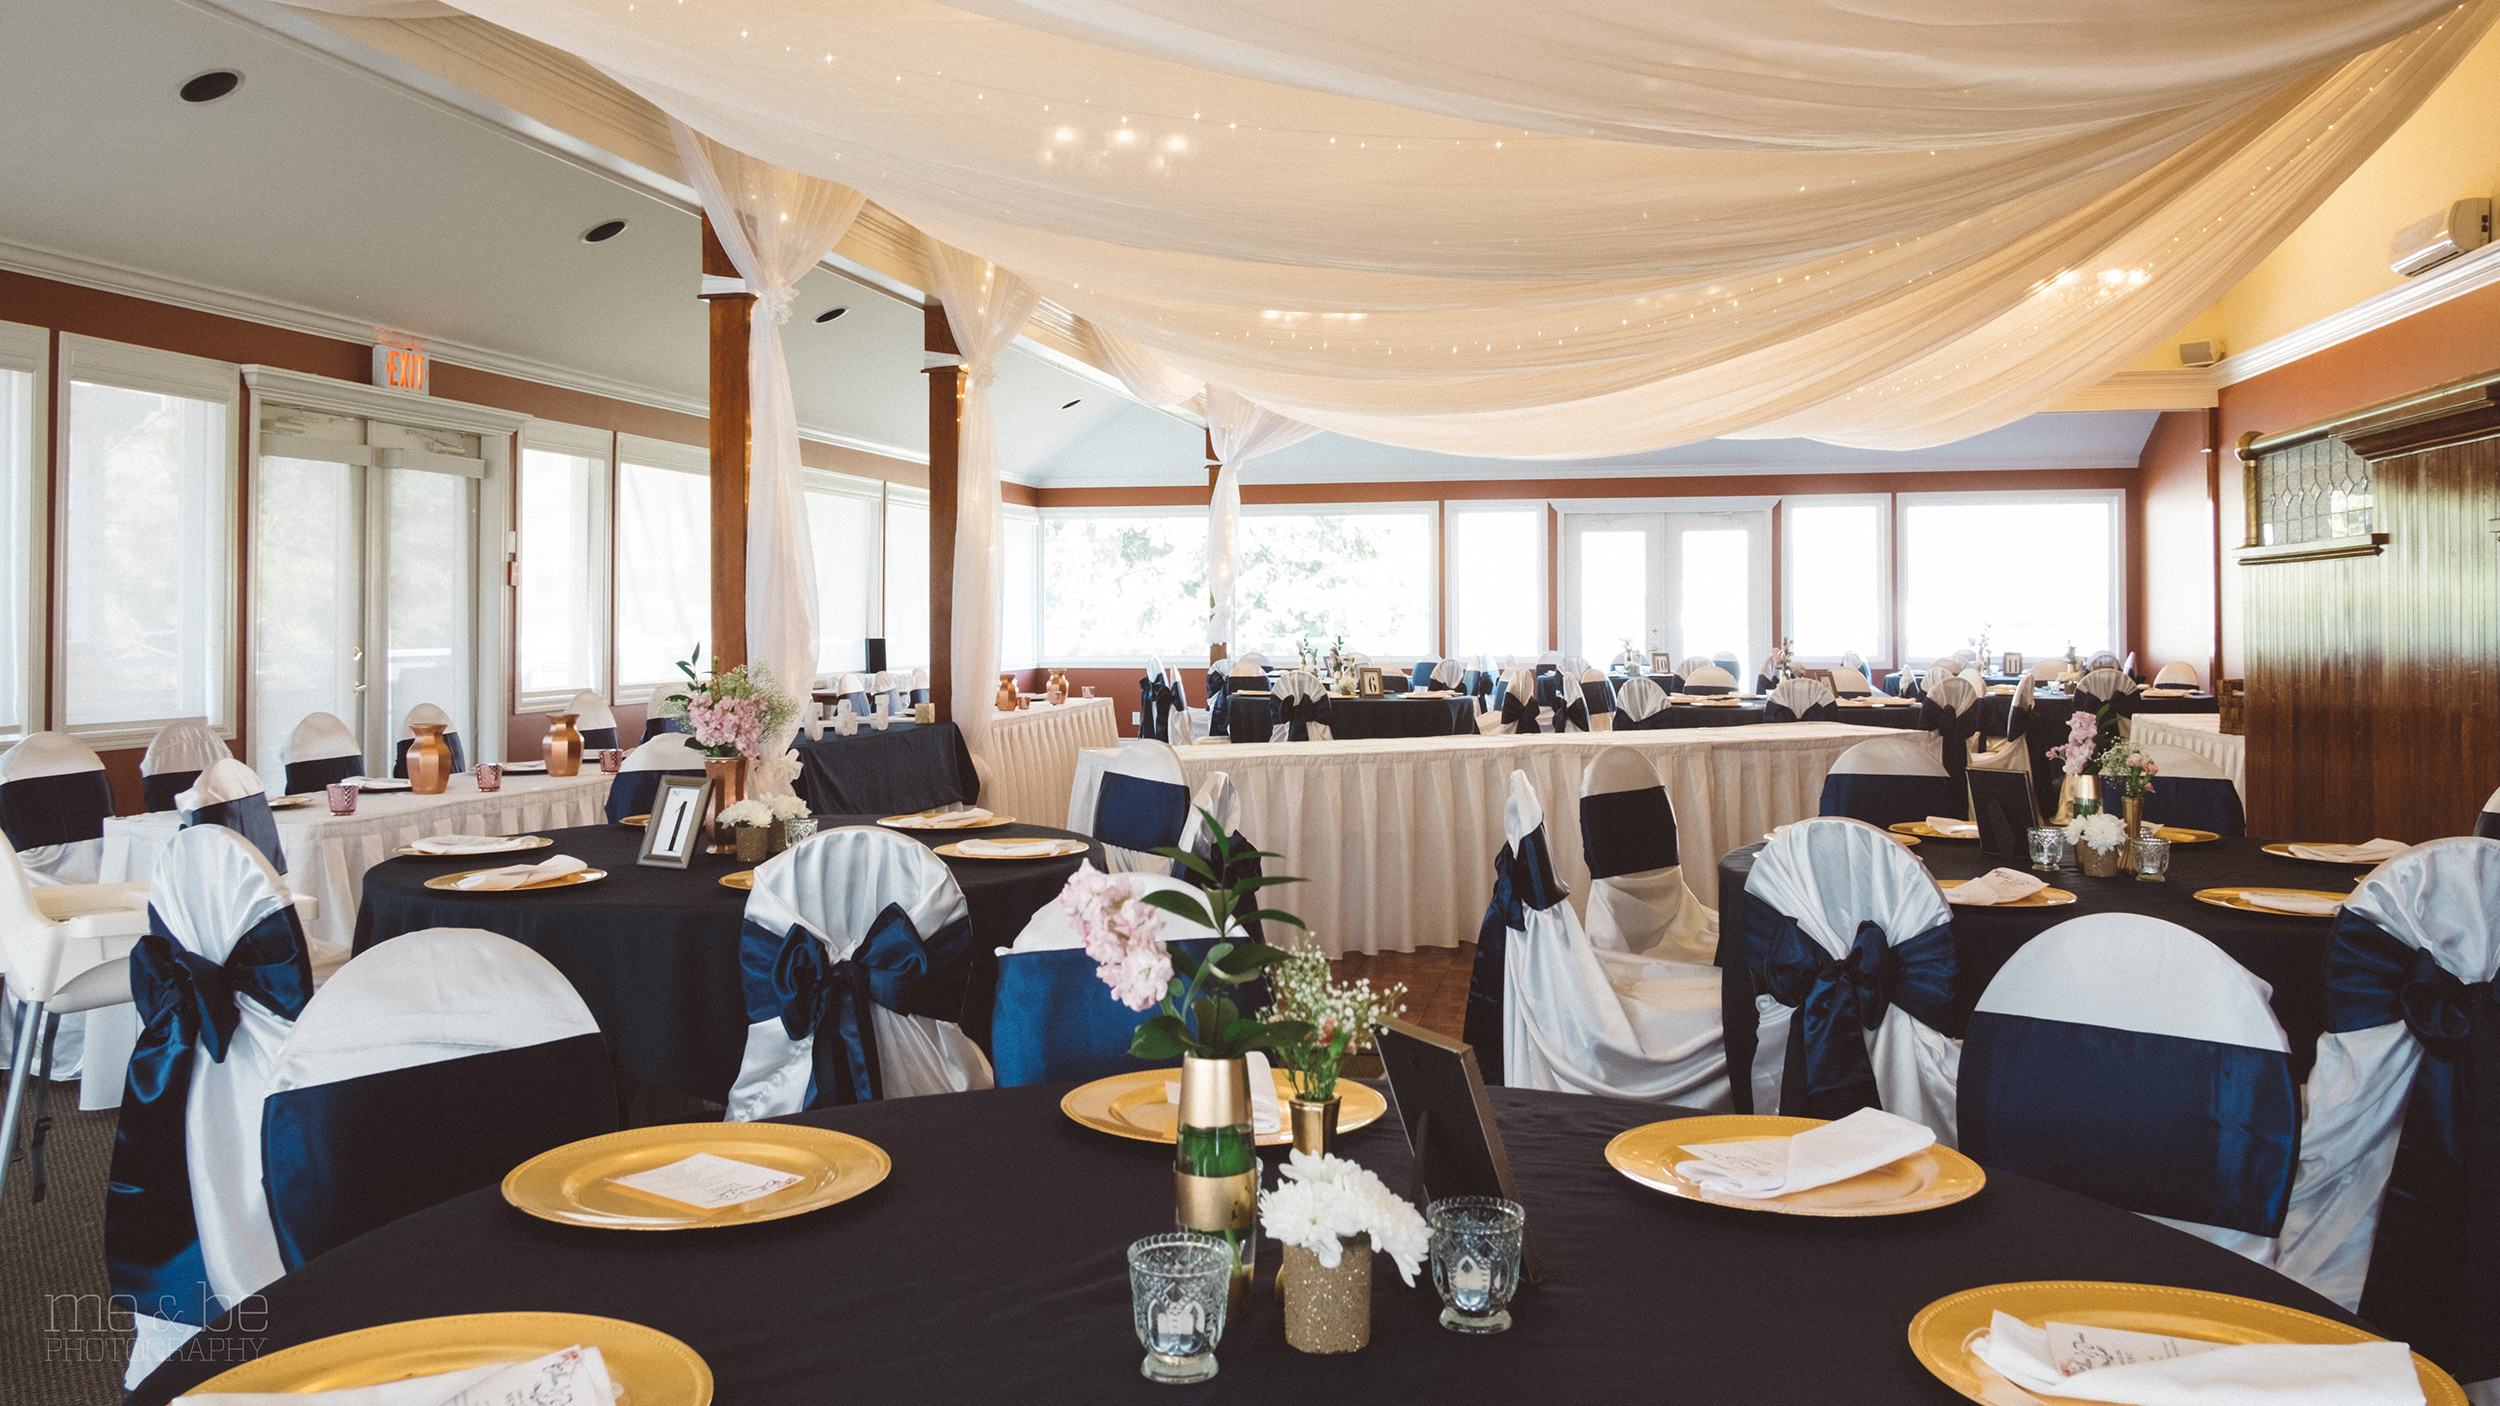 Wedding decorations set-up in the Somerset room at the South Thompson Inn & Conference Centre.